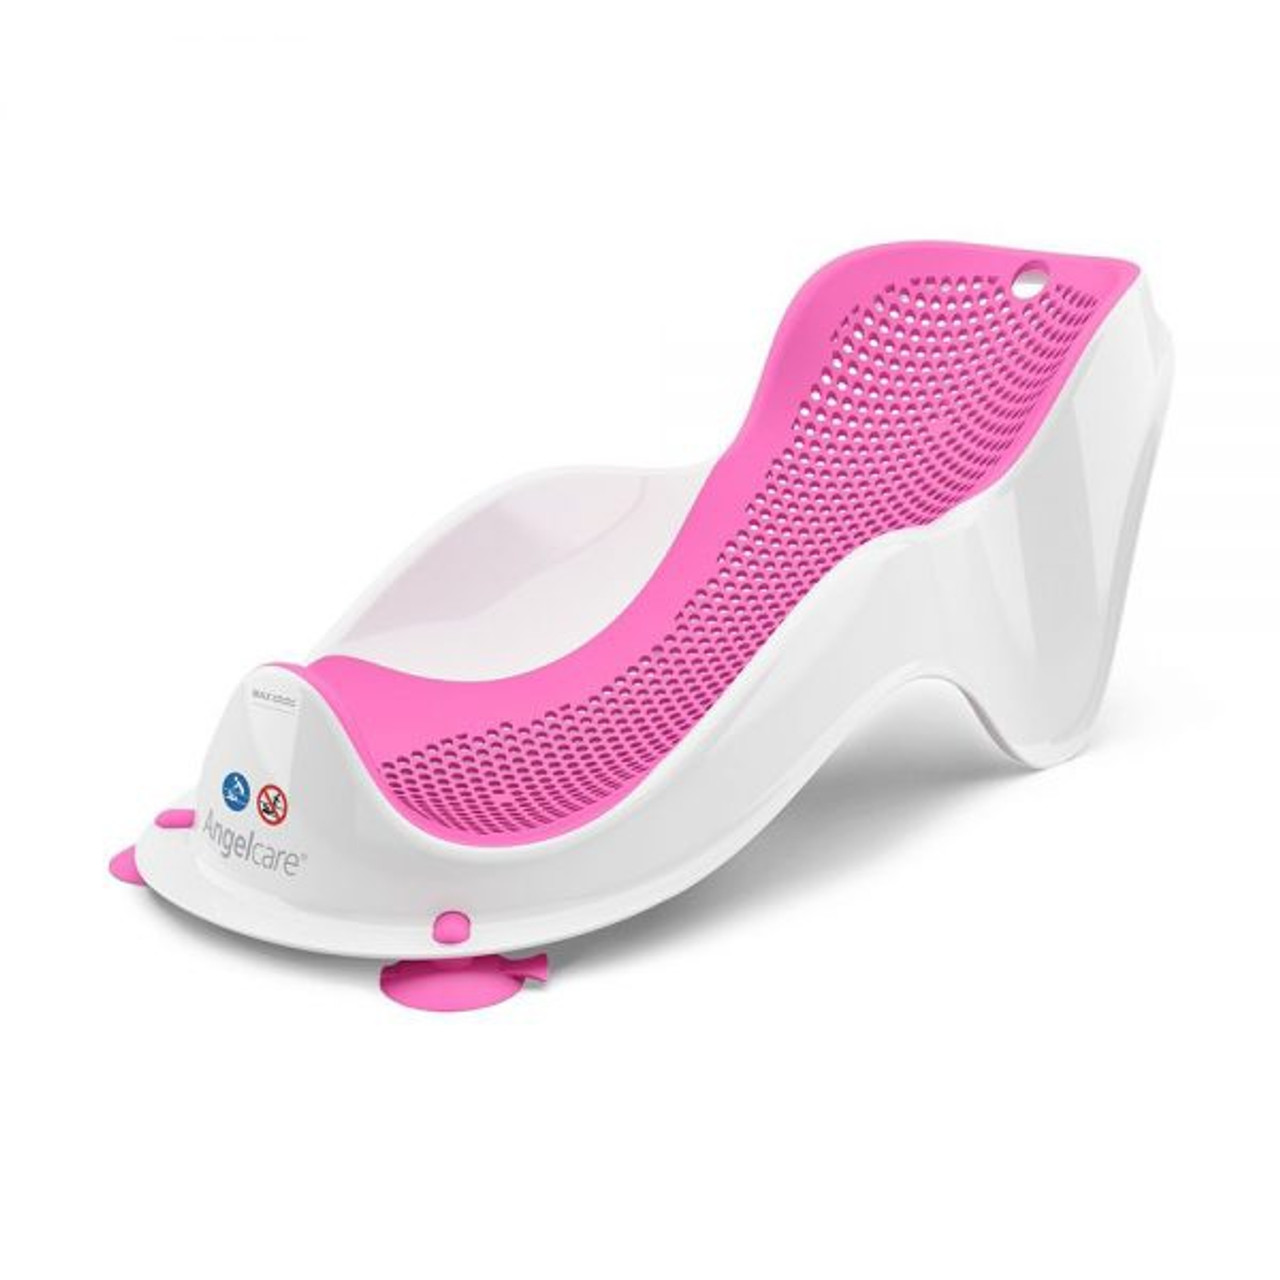 Angelcare Bath Support Fit at Baby Barn Discounts Angelcare Baby Bath Support Fit is thoughtfully designed to offer babies a comfortable, reassuring bathing experience